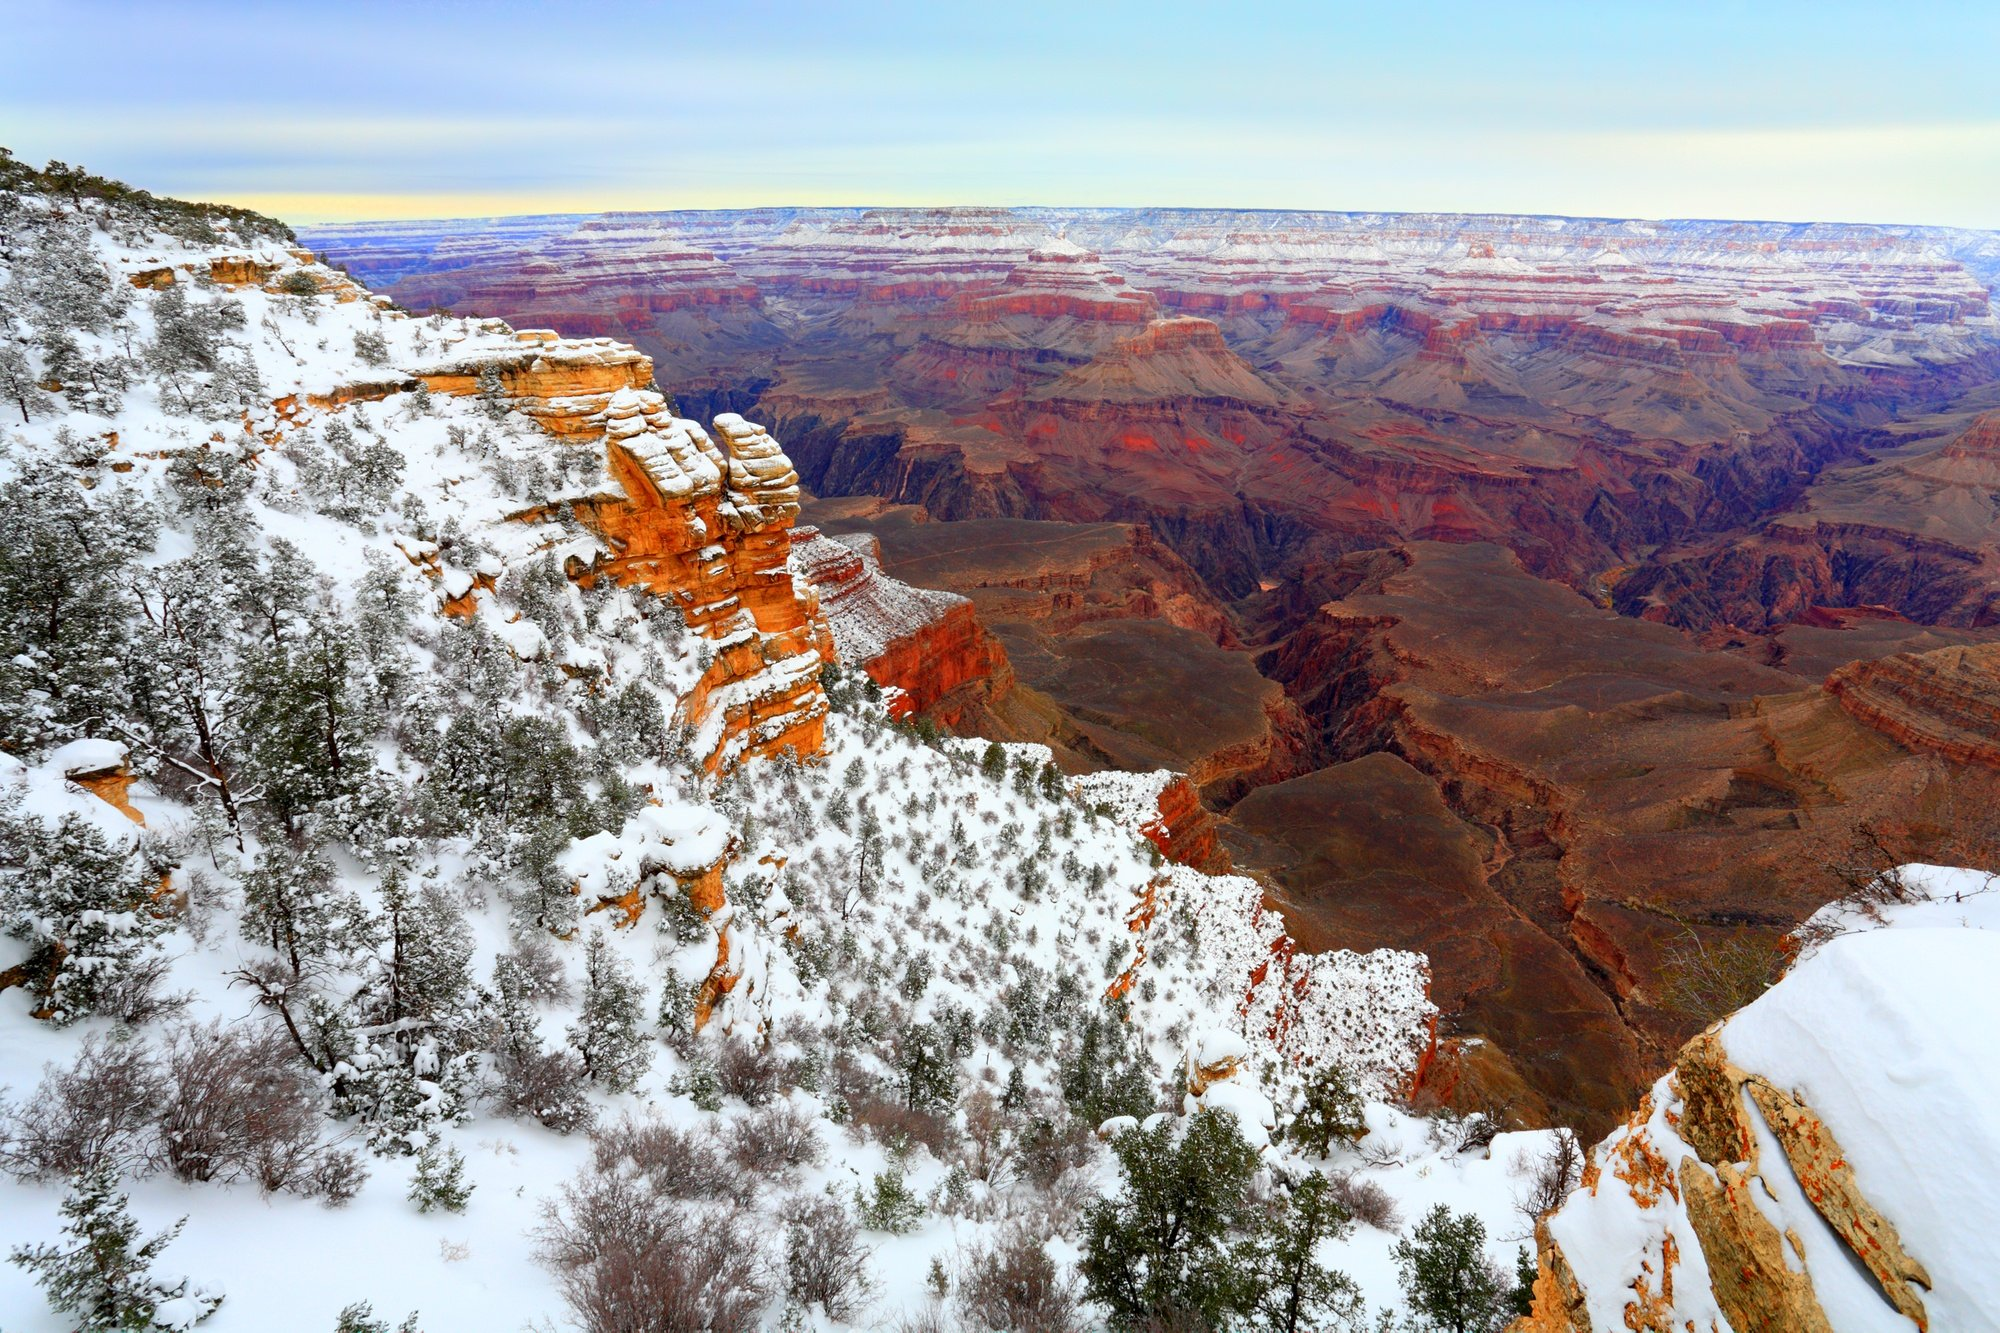 Snow at the Grand Canyon in winter